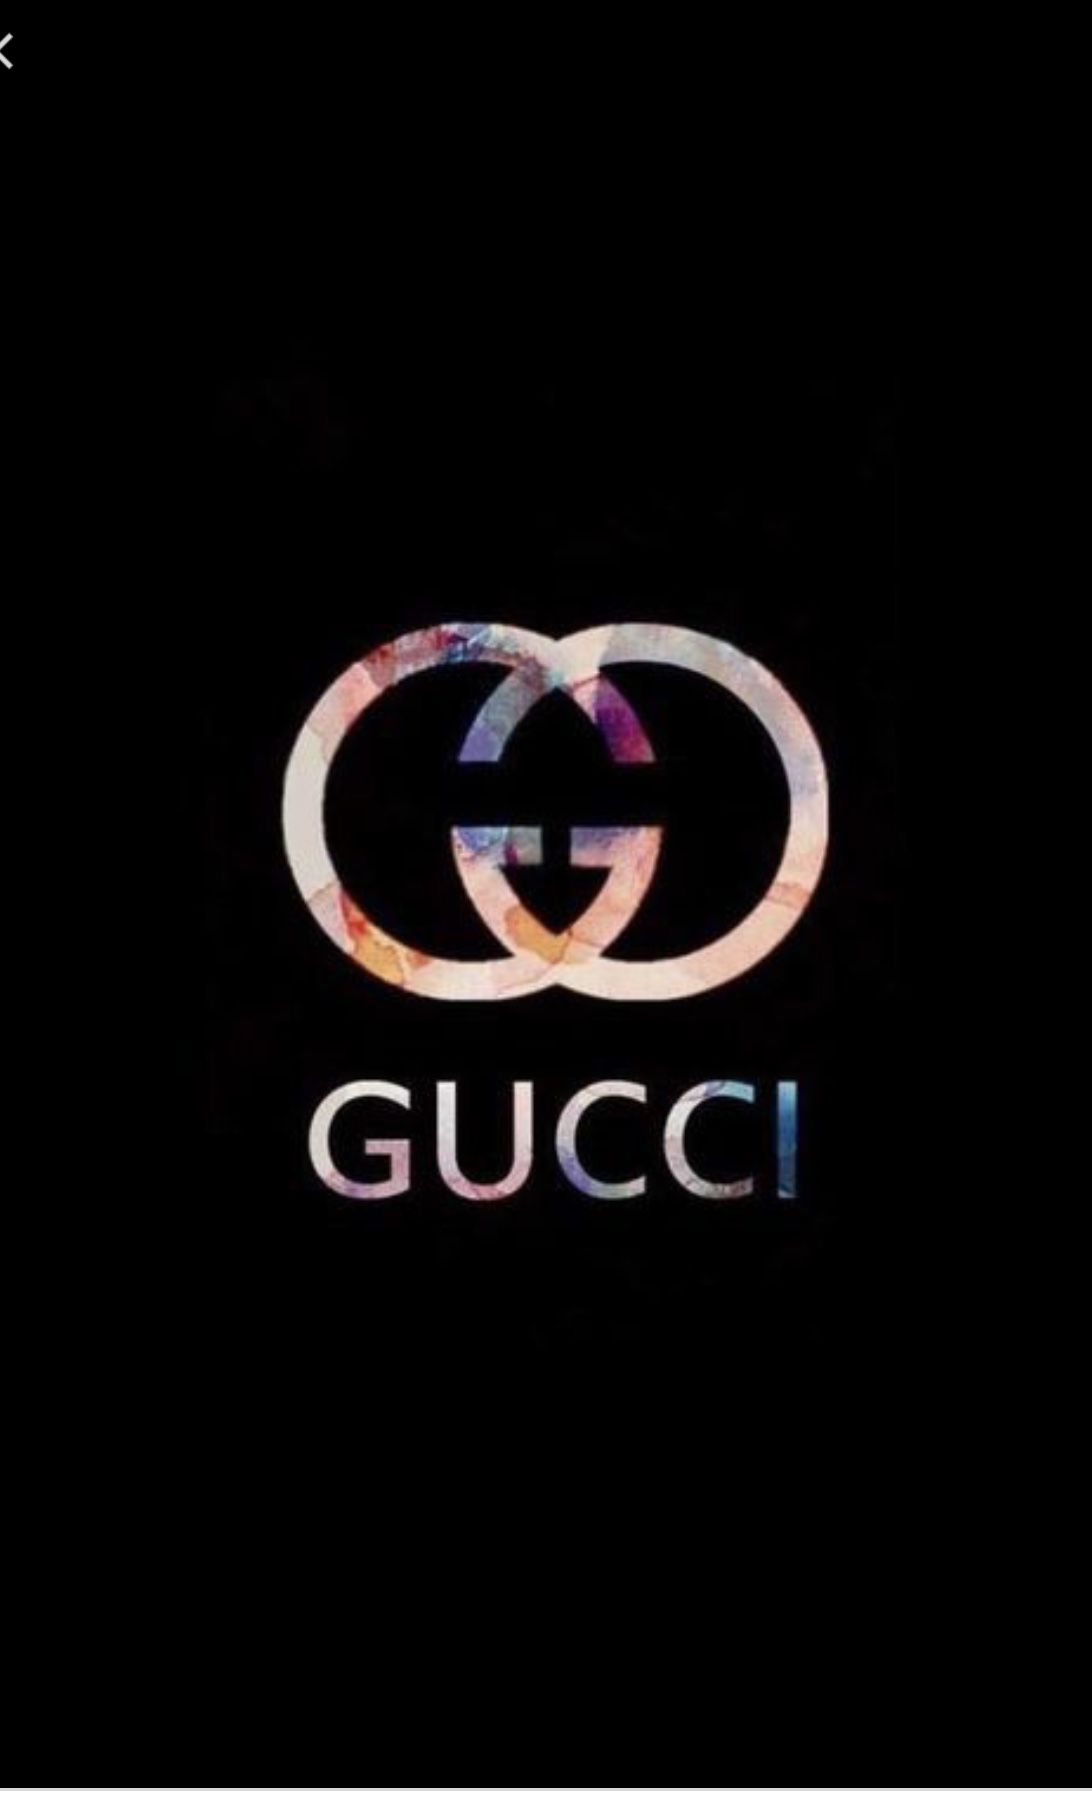 Pin By Ze Droguinha On Iphone Gucci Wallpaper Iphone Logo Wallpaper Hd Apple Watch Wallpaper